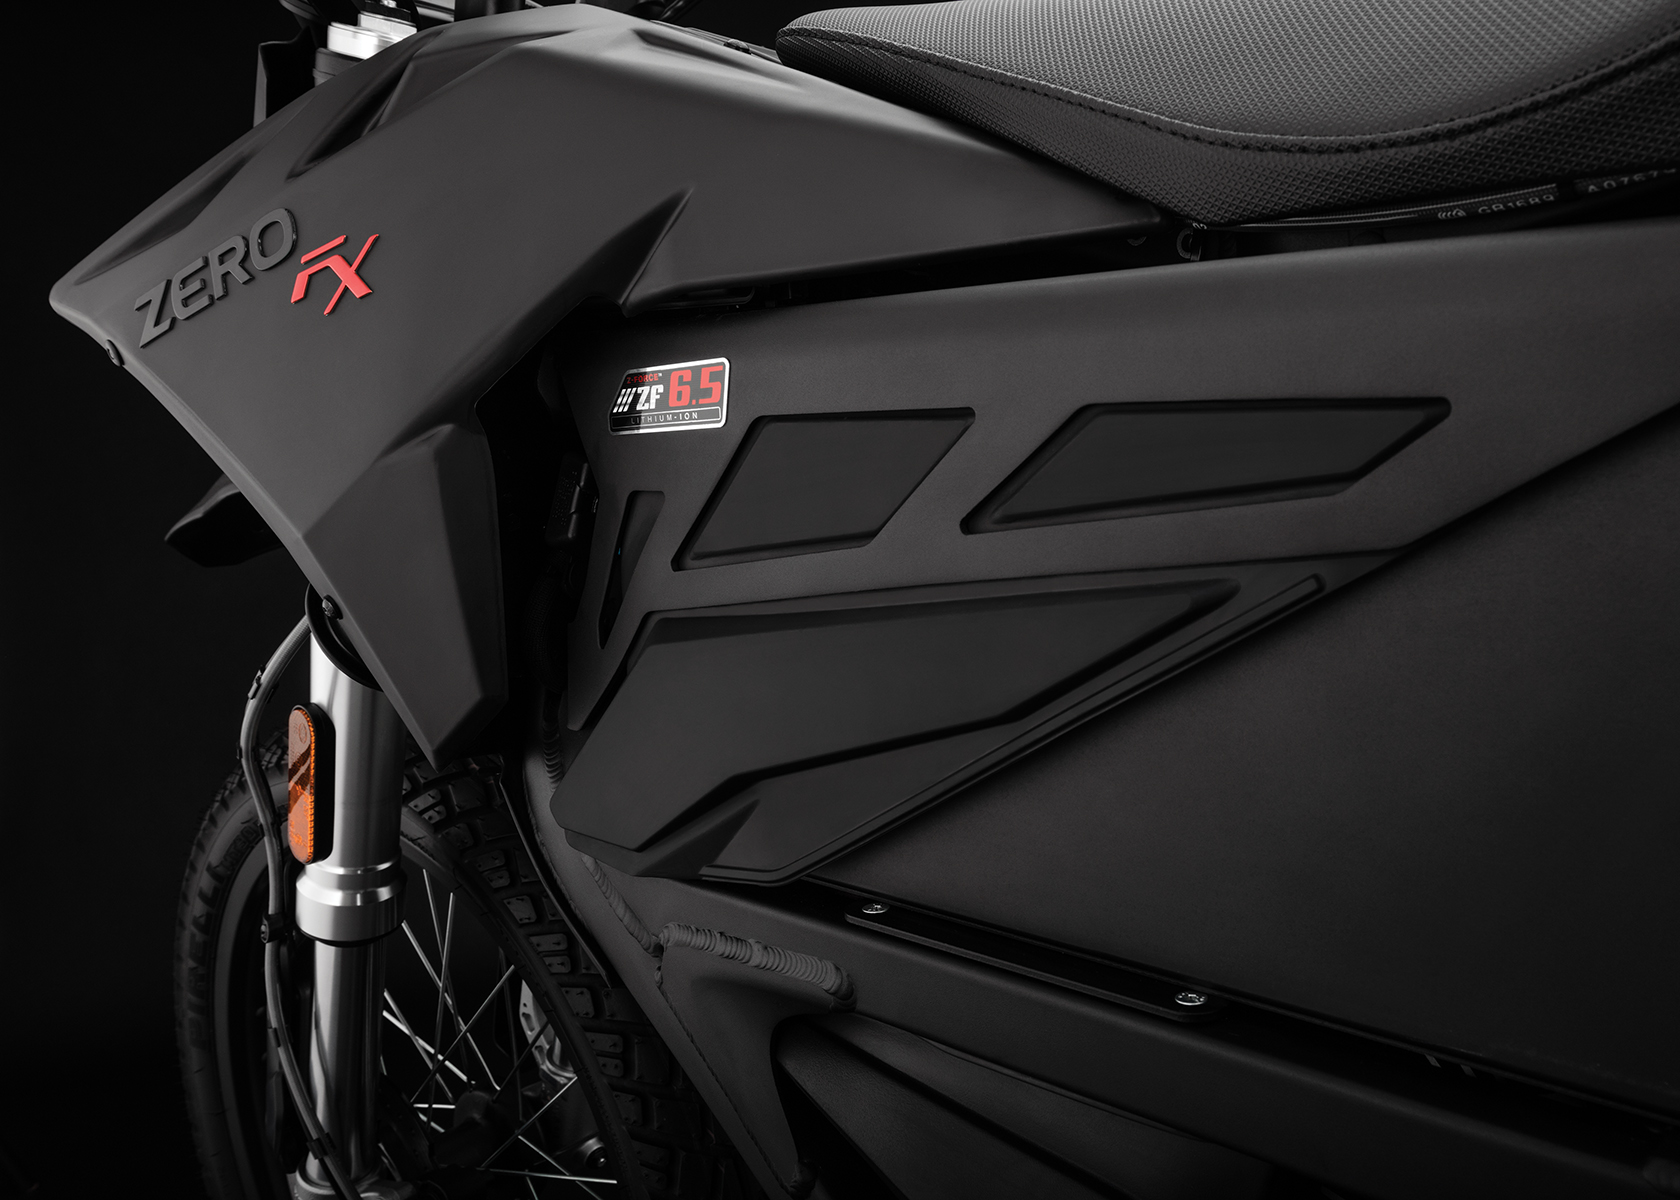 2017 Zero FX Electric Motorcycle: Power Pack